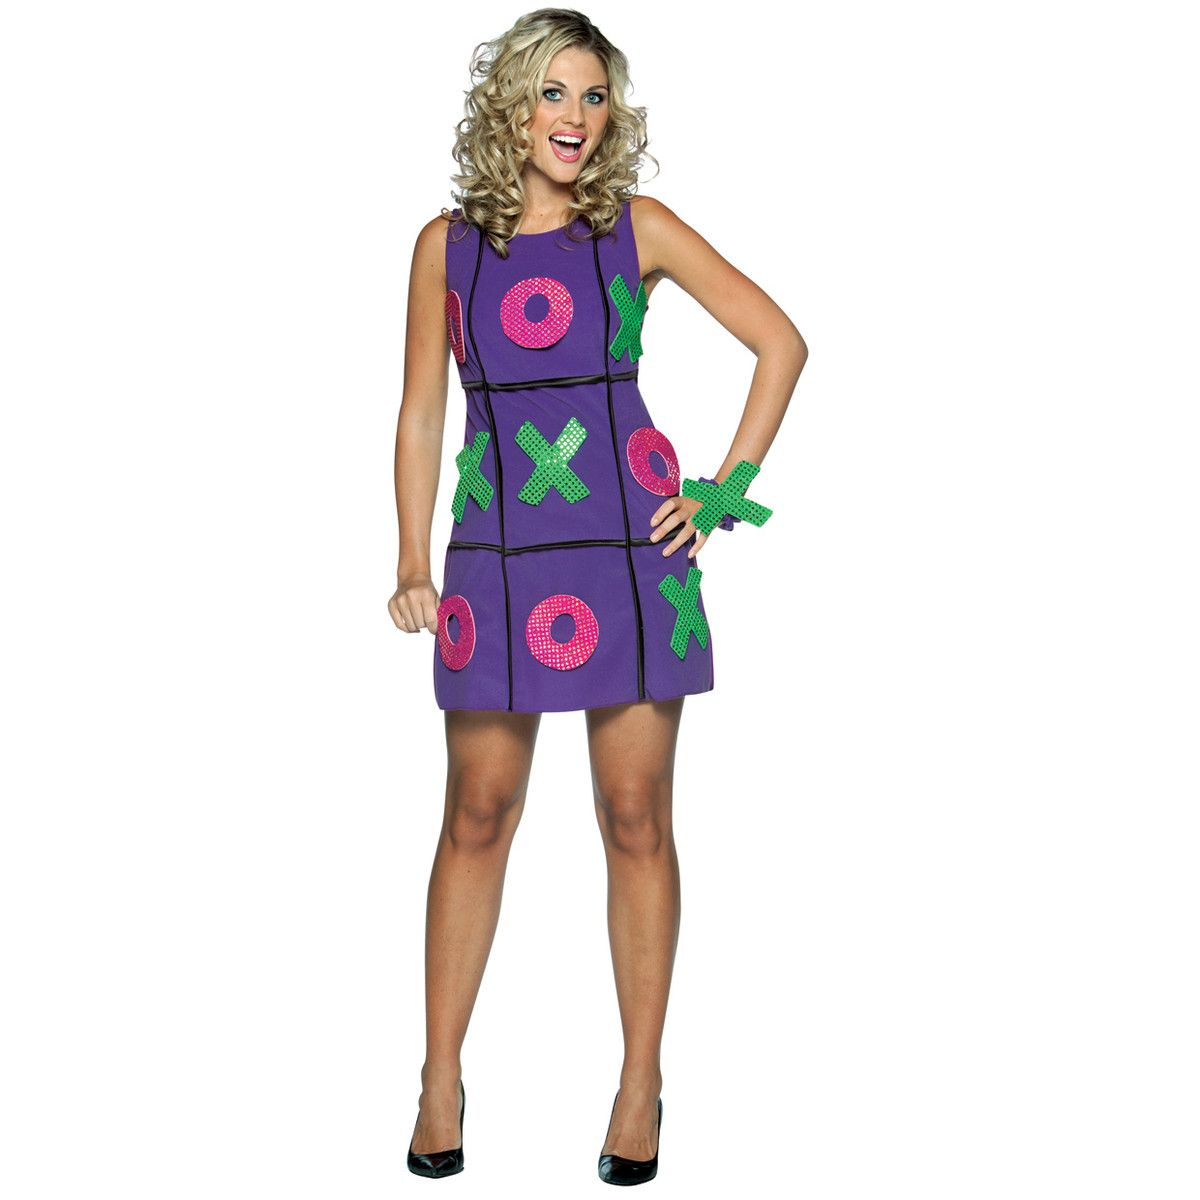 Adult dress party game